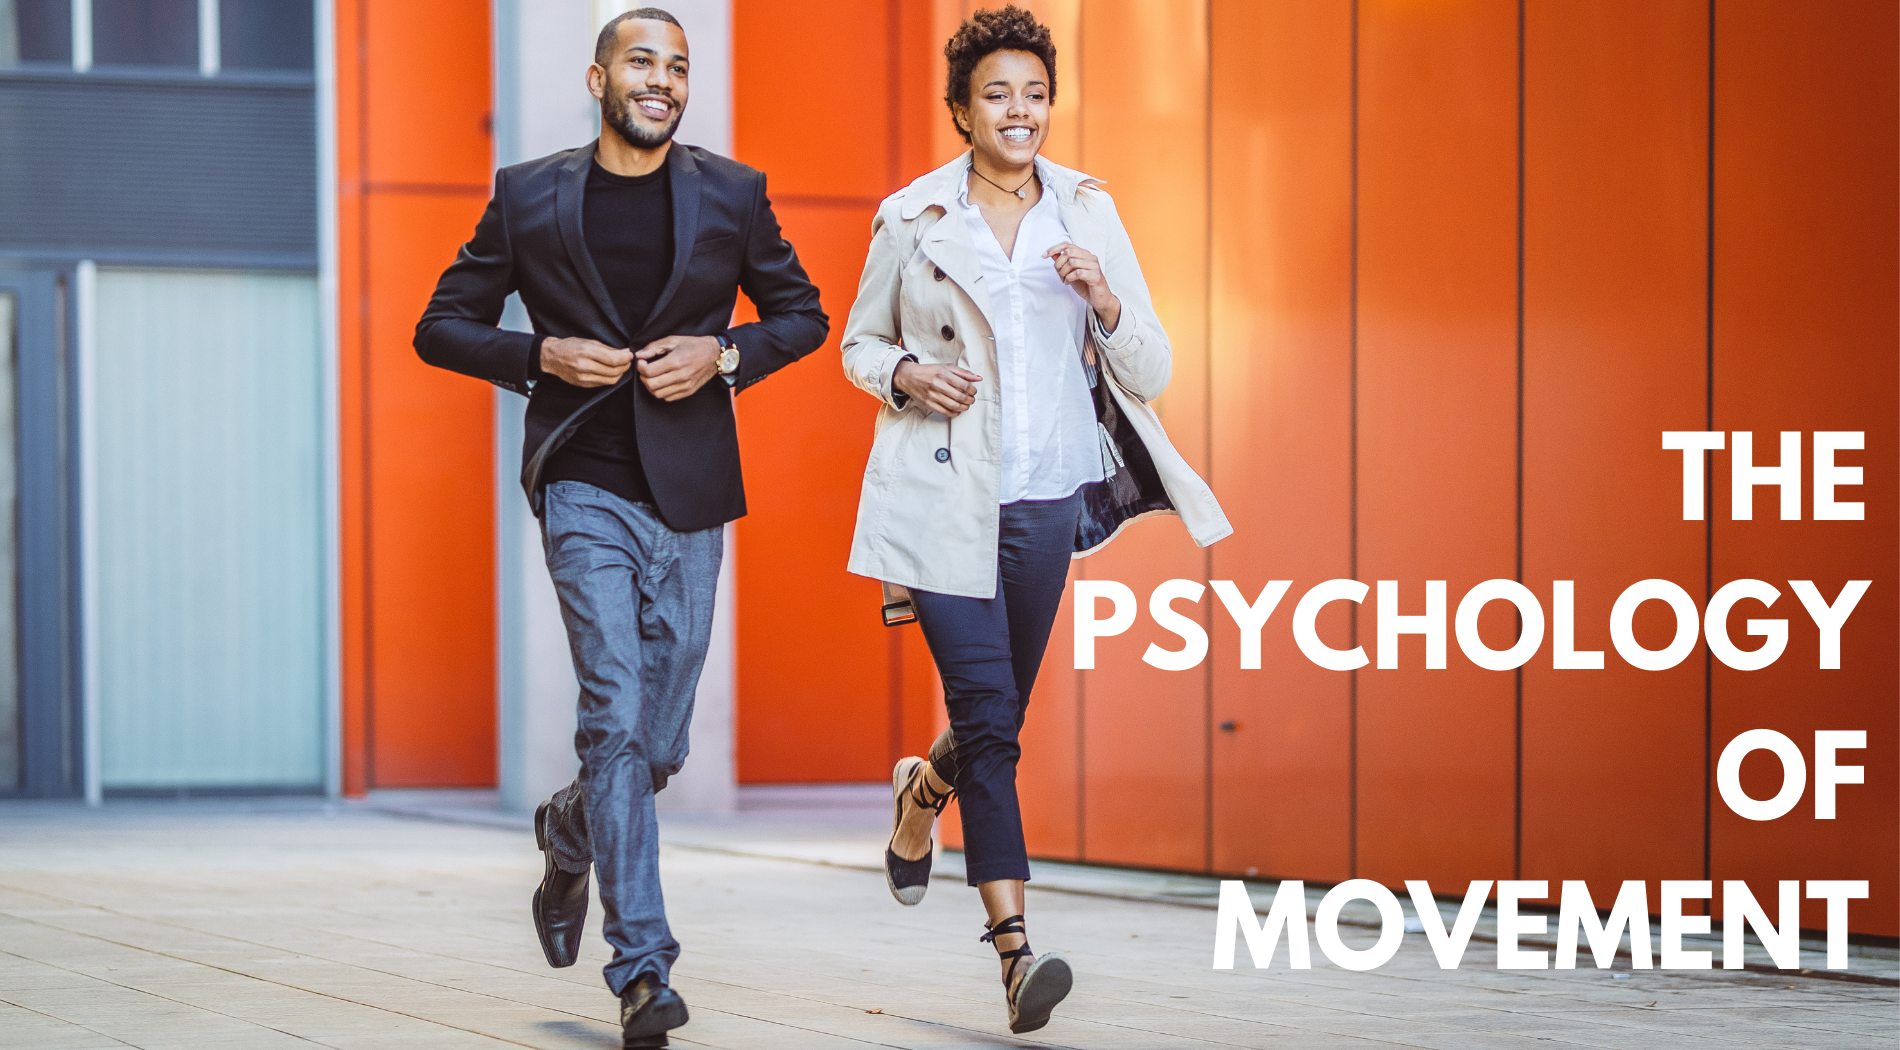 Psychology of Movement Course Image